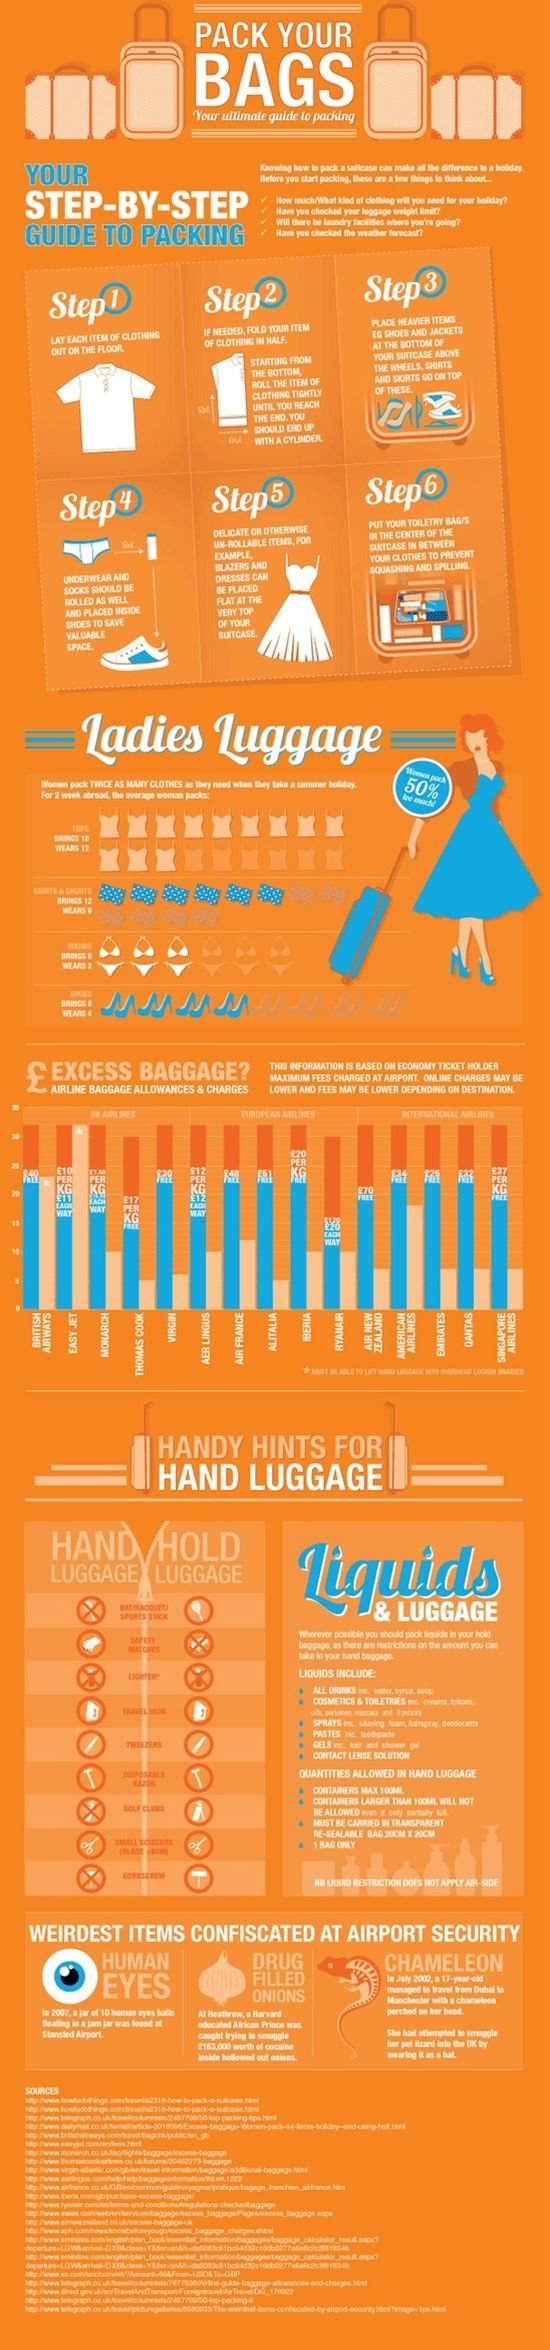 Can't remember if I've pinned this already! This infographic from travel insurance experts Direct Travel charts useful information about how to pack a suitcase to get most in, airline excess bag